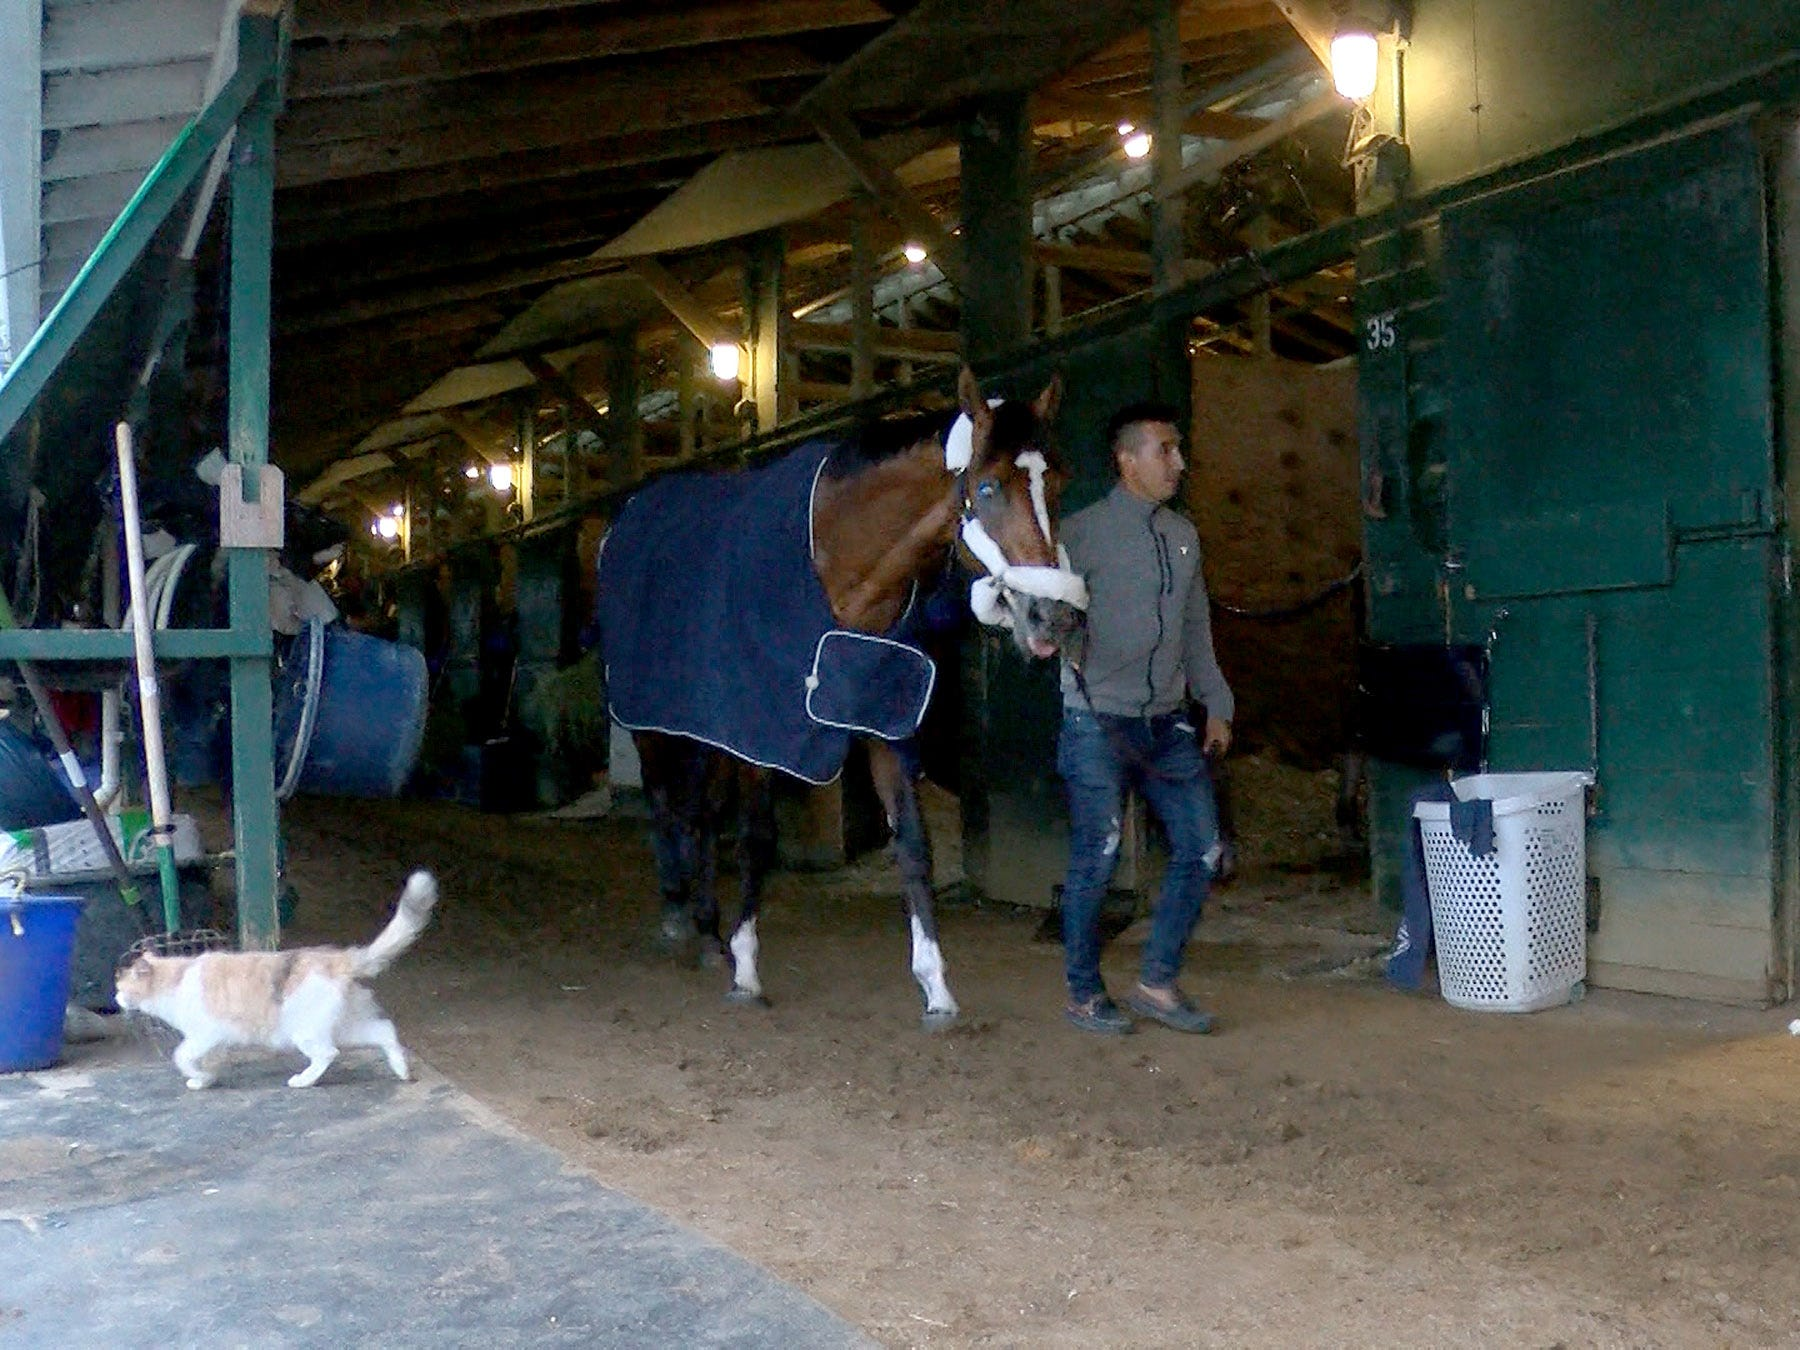 Edelberto Rivas leads Maximum Security, disaqualified after winning the Kentucky Derby on Saturday, around Jason Servis' barn after arriving at Monmouth Park early Tuesday, May 7, 2019.